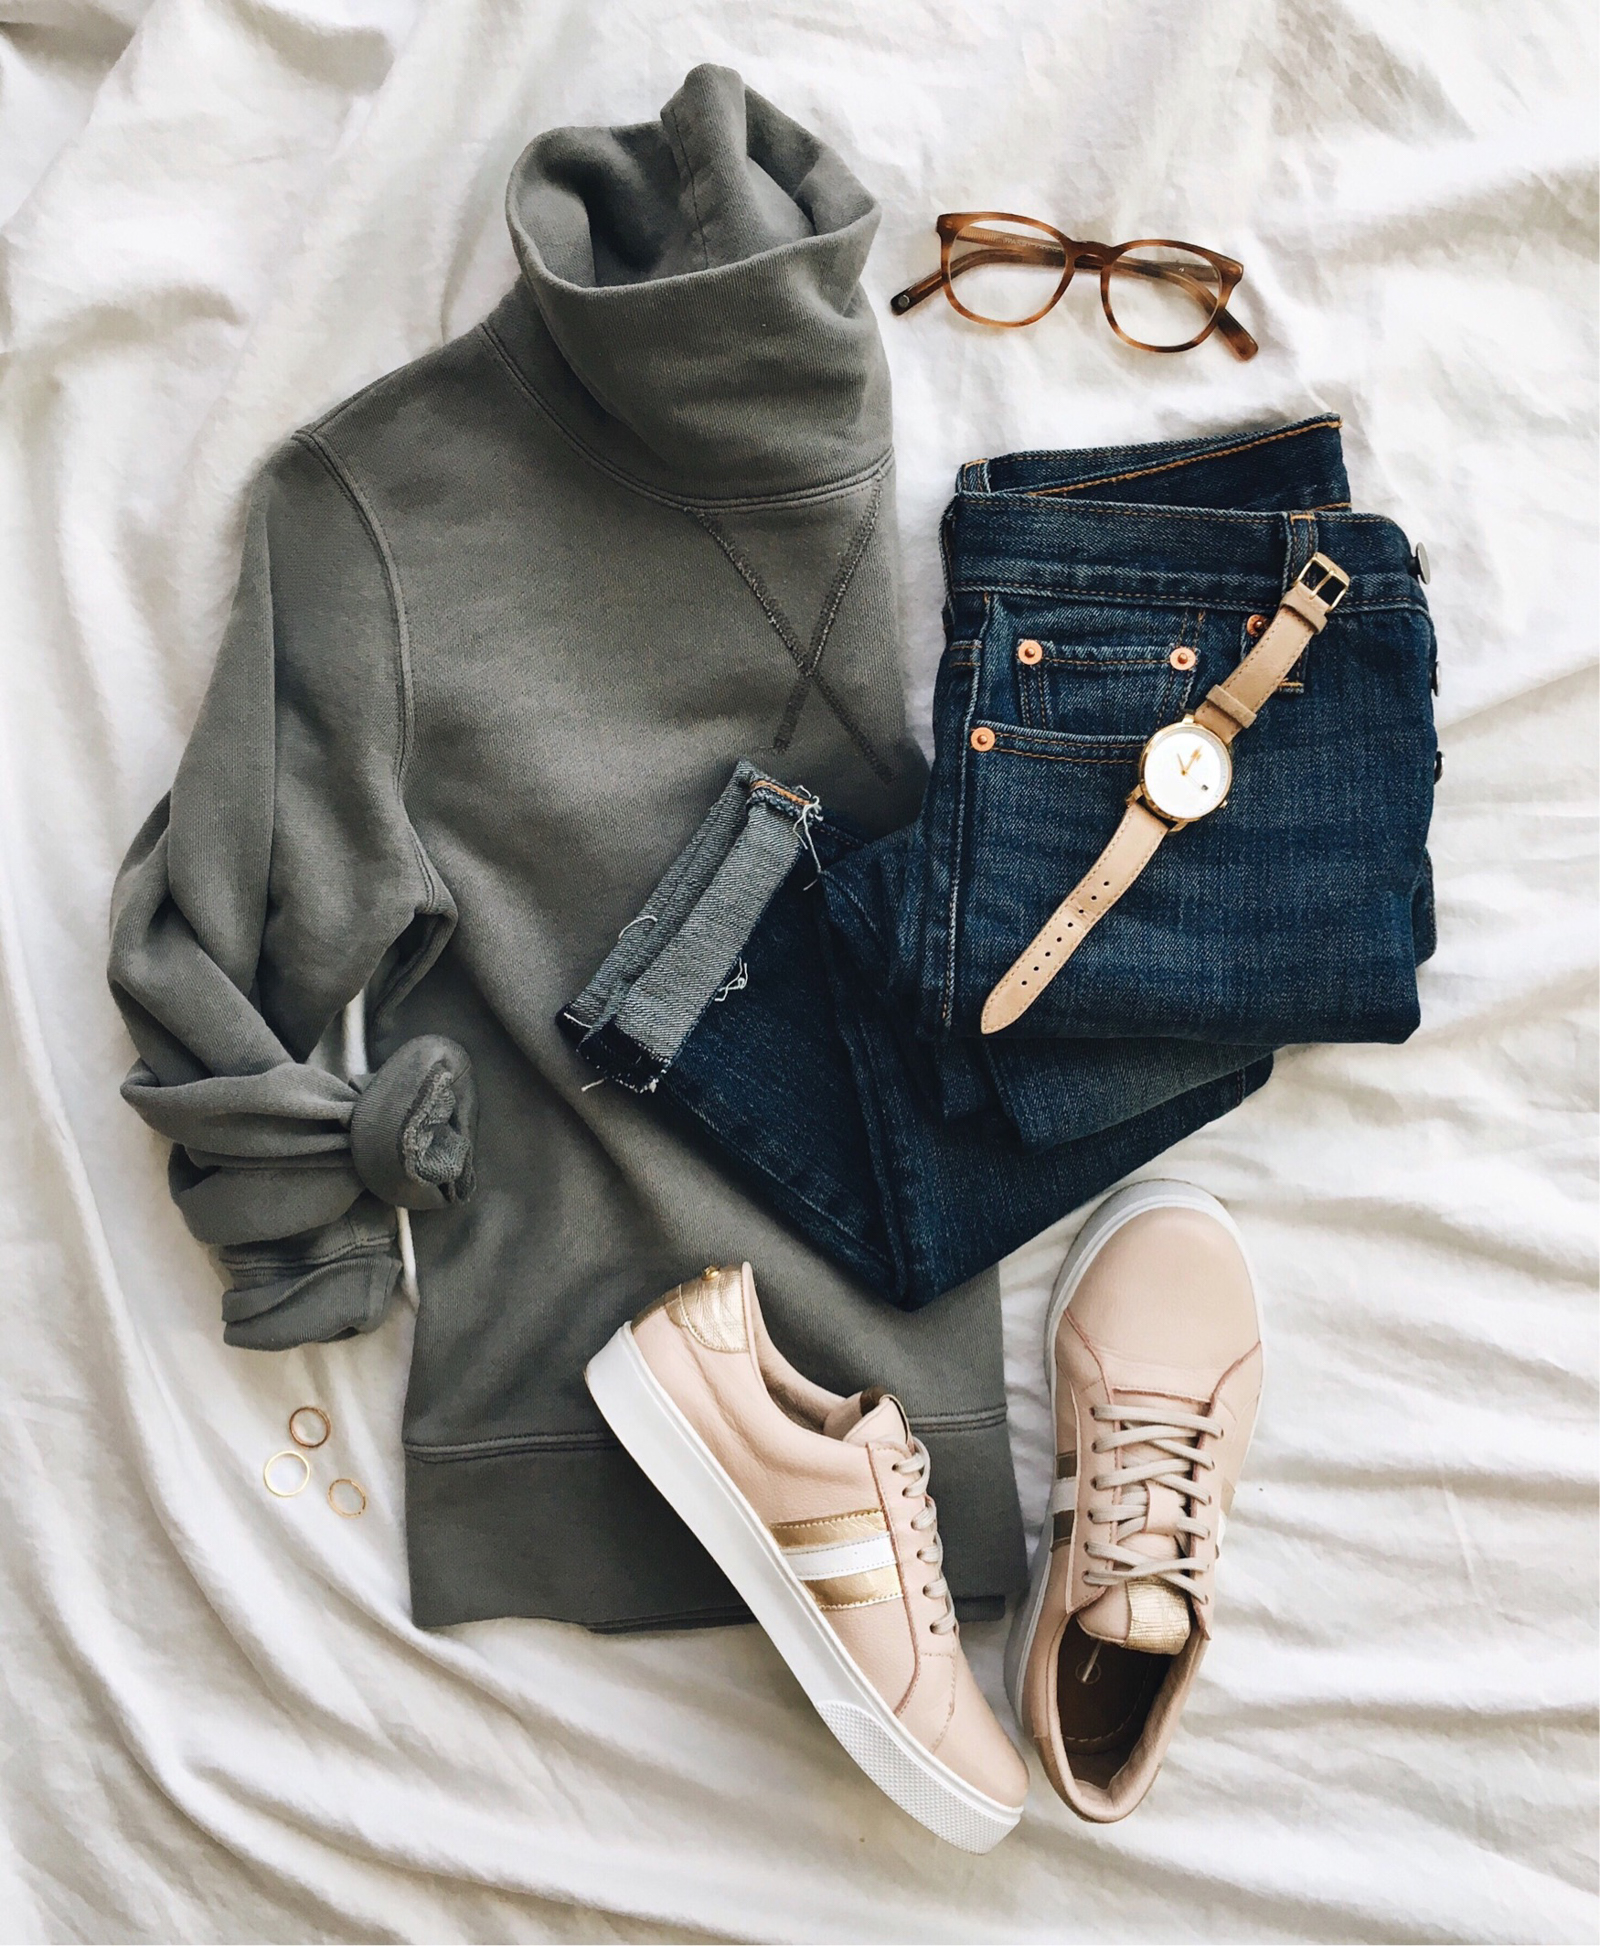 livvyland-blog-olivia-watson-instagram-roundup-austin-texas-cozy-winter-outfit-madewell-pullover-blush-sneakers